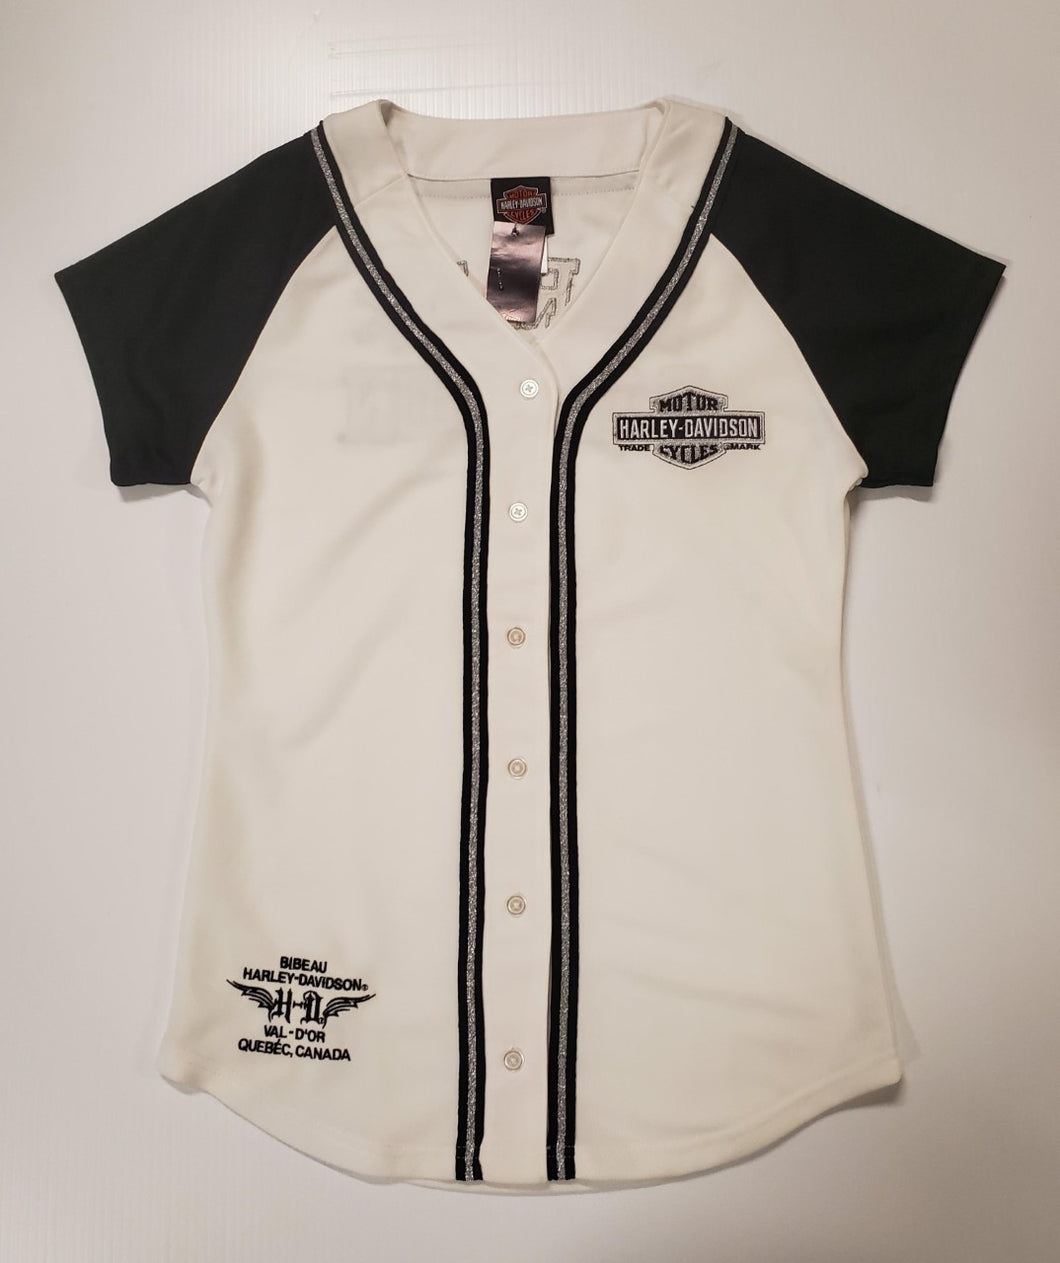 Harley-Davidson without a break SS baseball jersey